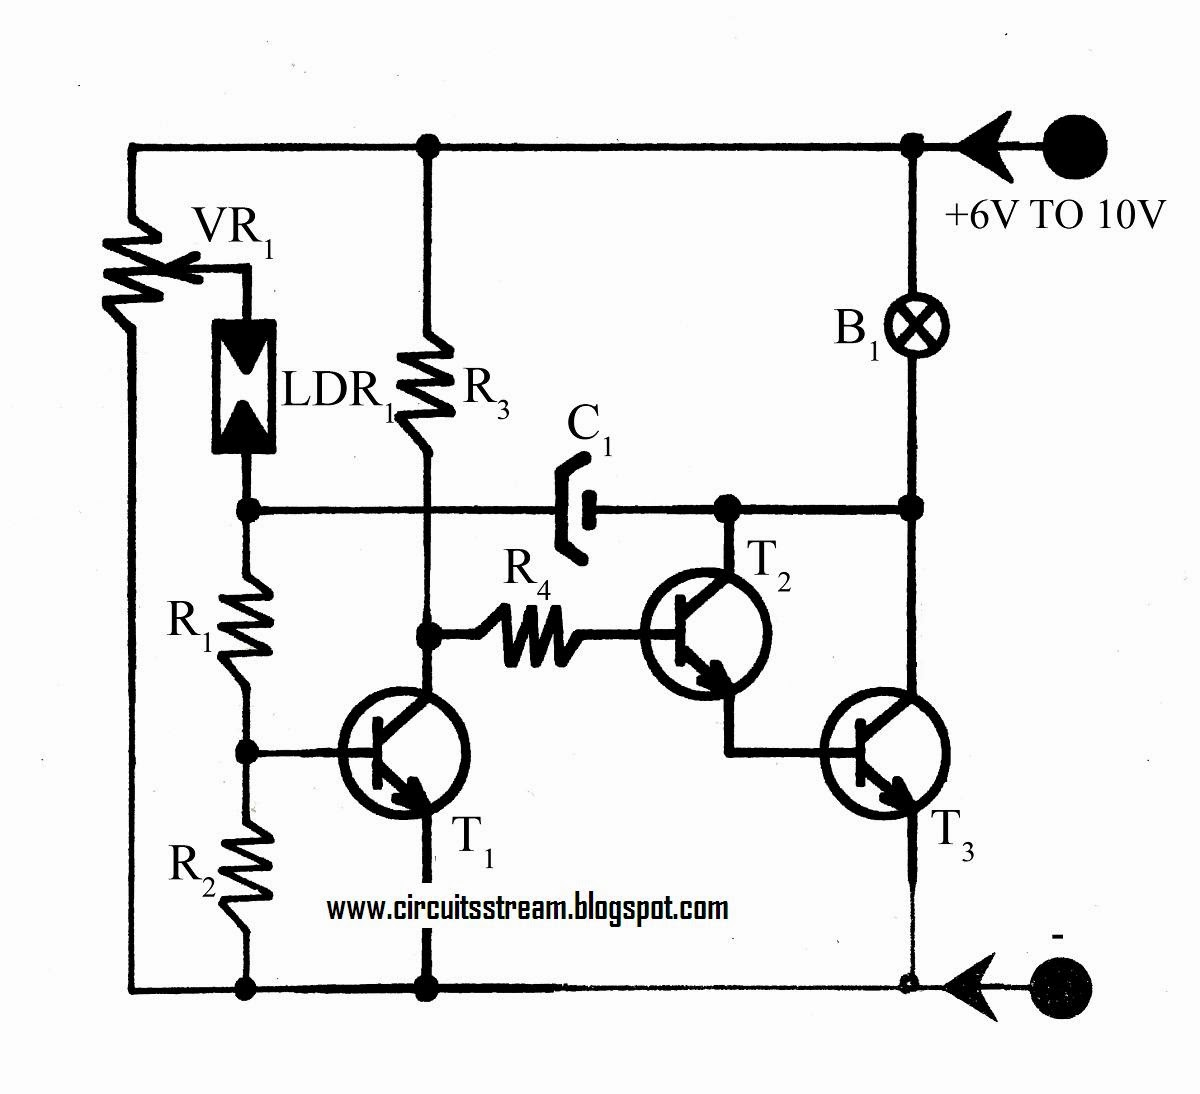 Super Circuit Diagram Build A Flashing Light With Twilight Switch Circuit Diagram